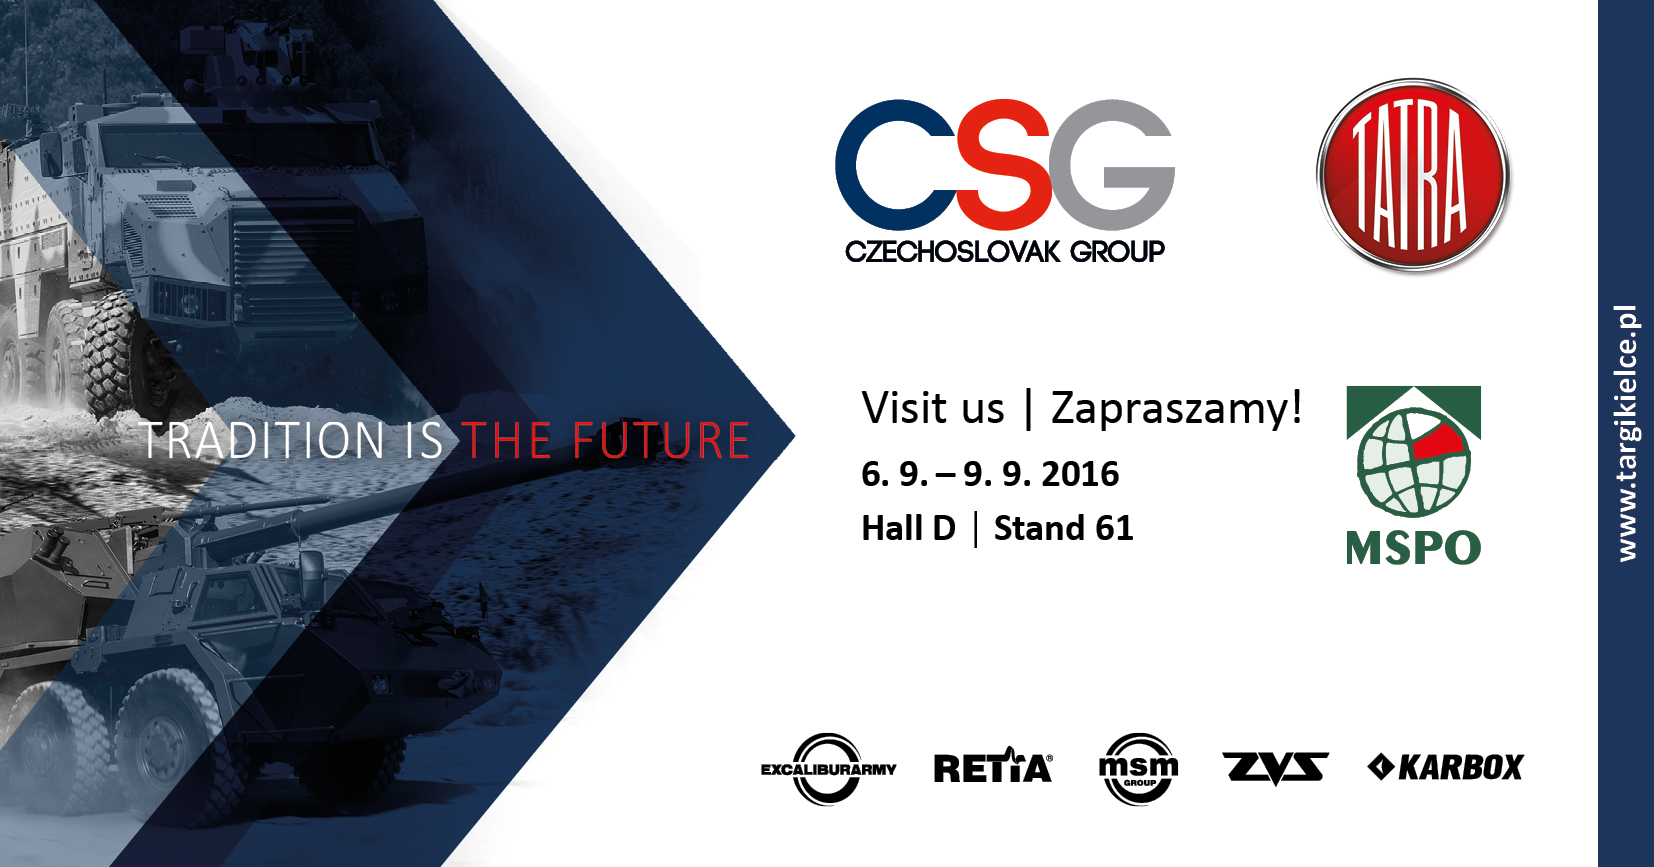 The companies CZECHOSLOVAK GROUP and TATRA will present themselves at the largest defence industry trade fair in Central Europe.